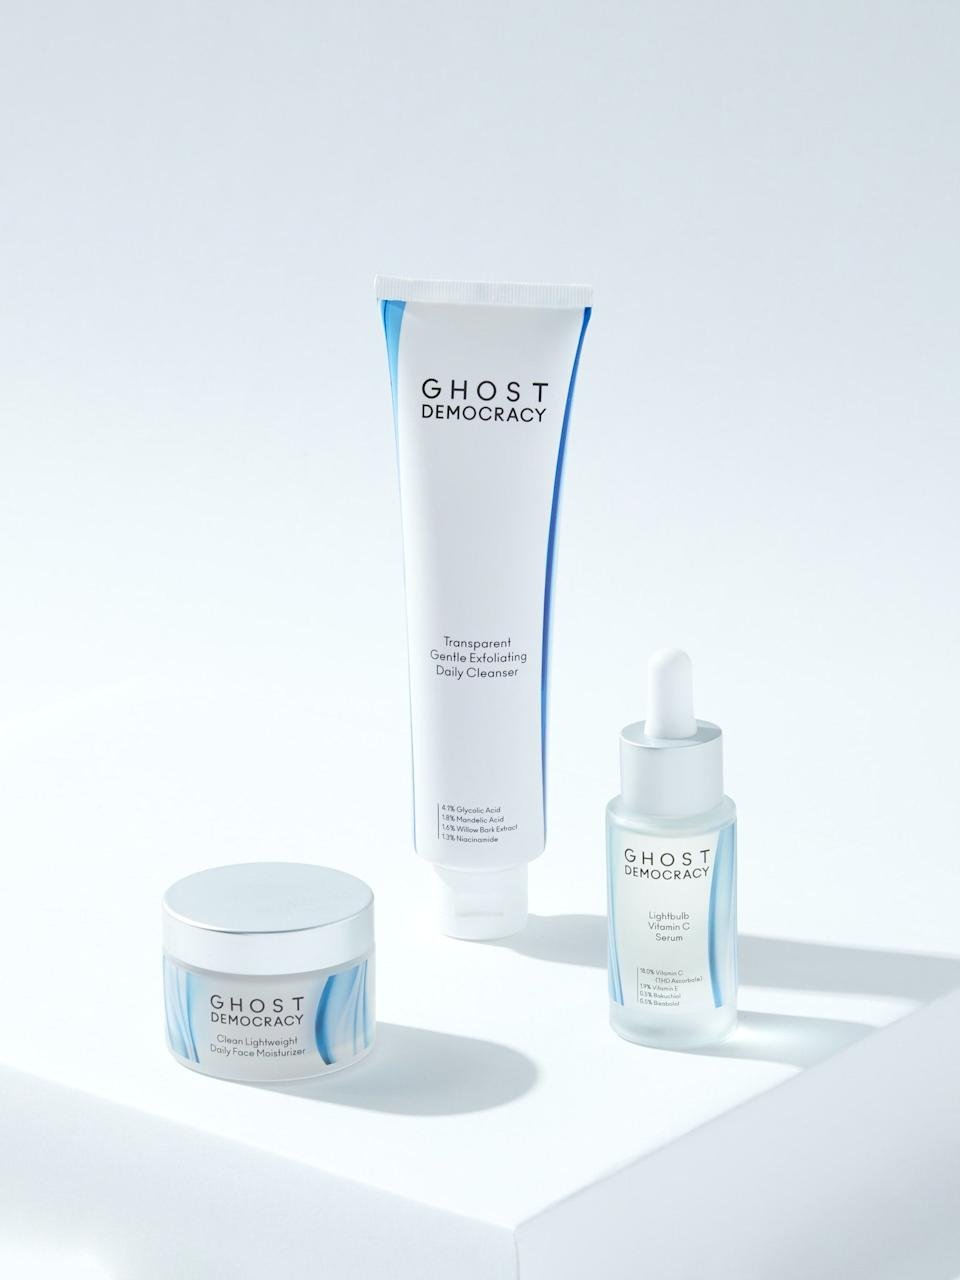 "<h3>Ghost Democracy The Starter Kit: Vitamin C Serum<br></h3><br>Jumpstart your skin-care routine with this all-in-one kit of full-size products designed to deliver major brightening and hydrating benefits.<br><br><strong>Ghost Democracy</strong> The Starter Kit: Vitamin C Serum, $, available at <a href=""https://go.skimresources.com/?id=30283X879131&url=https%3A%2F%2Fwww.verishop.com%2Fghost-democracy%2Fvendor-bundles%2Fthe-starter-kit-vitamin-c-serum%2Fp4339787235351"" rel=""nofollow noopener"" target=""_blank"" data-ylk=""slk:Verishop"" class=""link rapid-noclick-resp"">Verishop</a>"